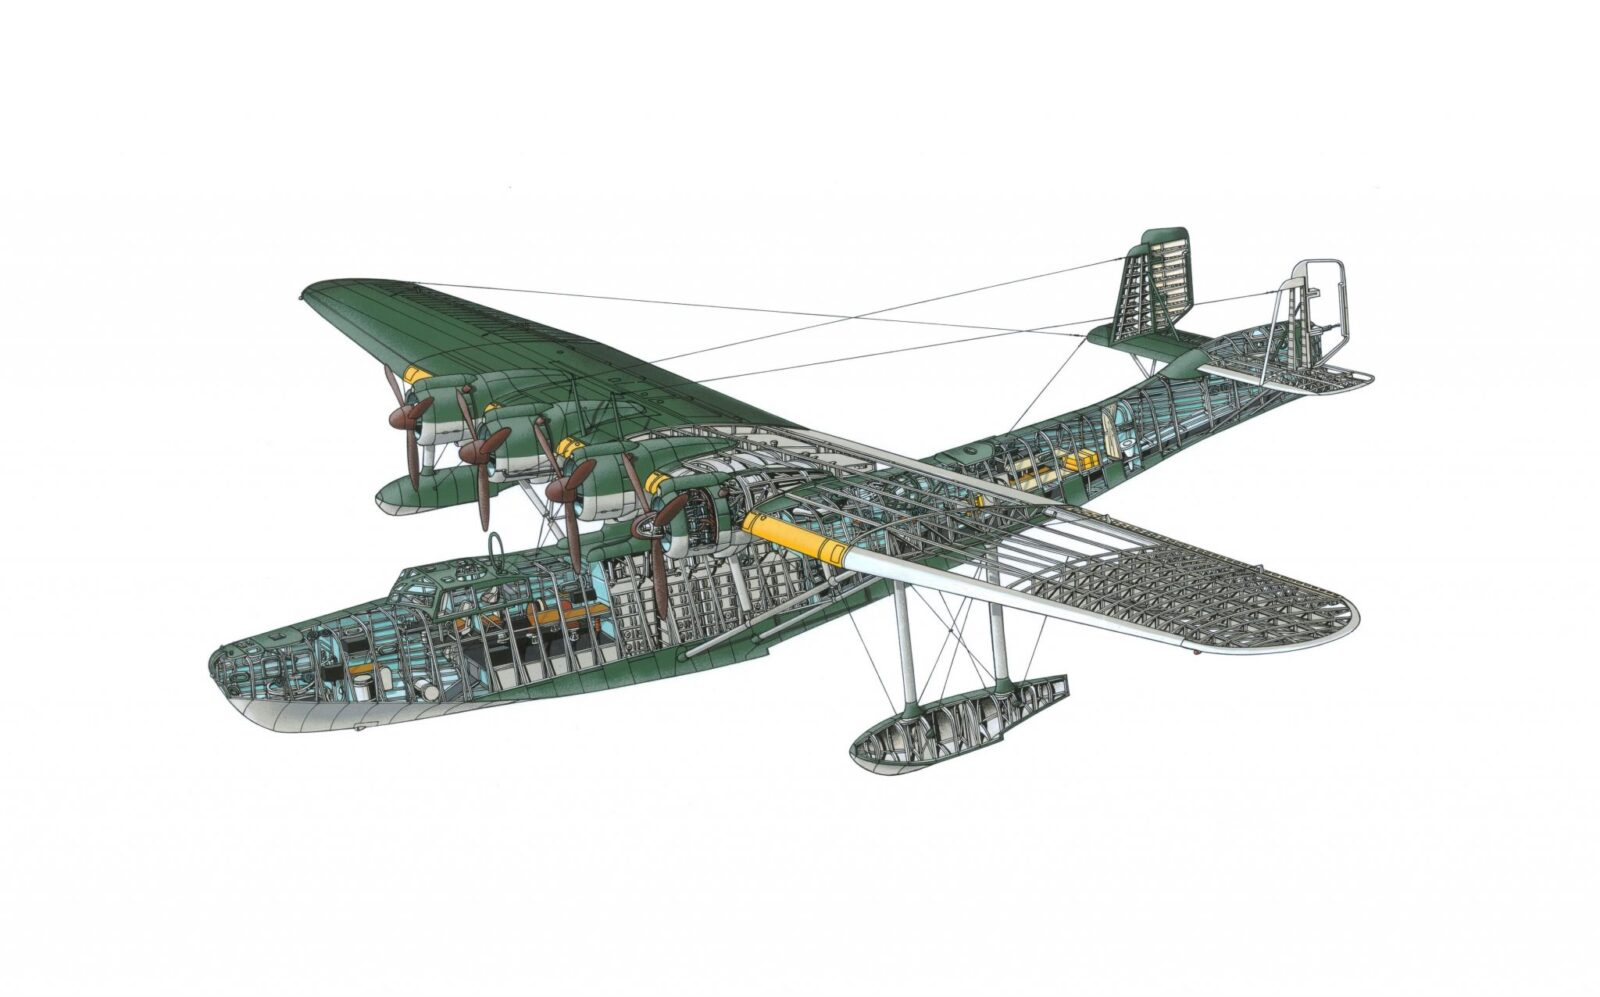 WWII Japanese Flying Boat Kawanishi H6K Mavis 1600x997 - Desktop Wallpaper: WWII Japanese Flying Boat Kawanishi H6K